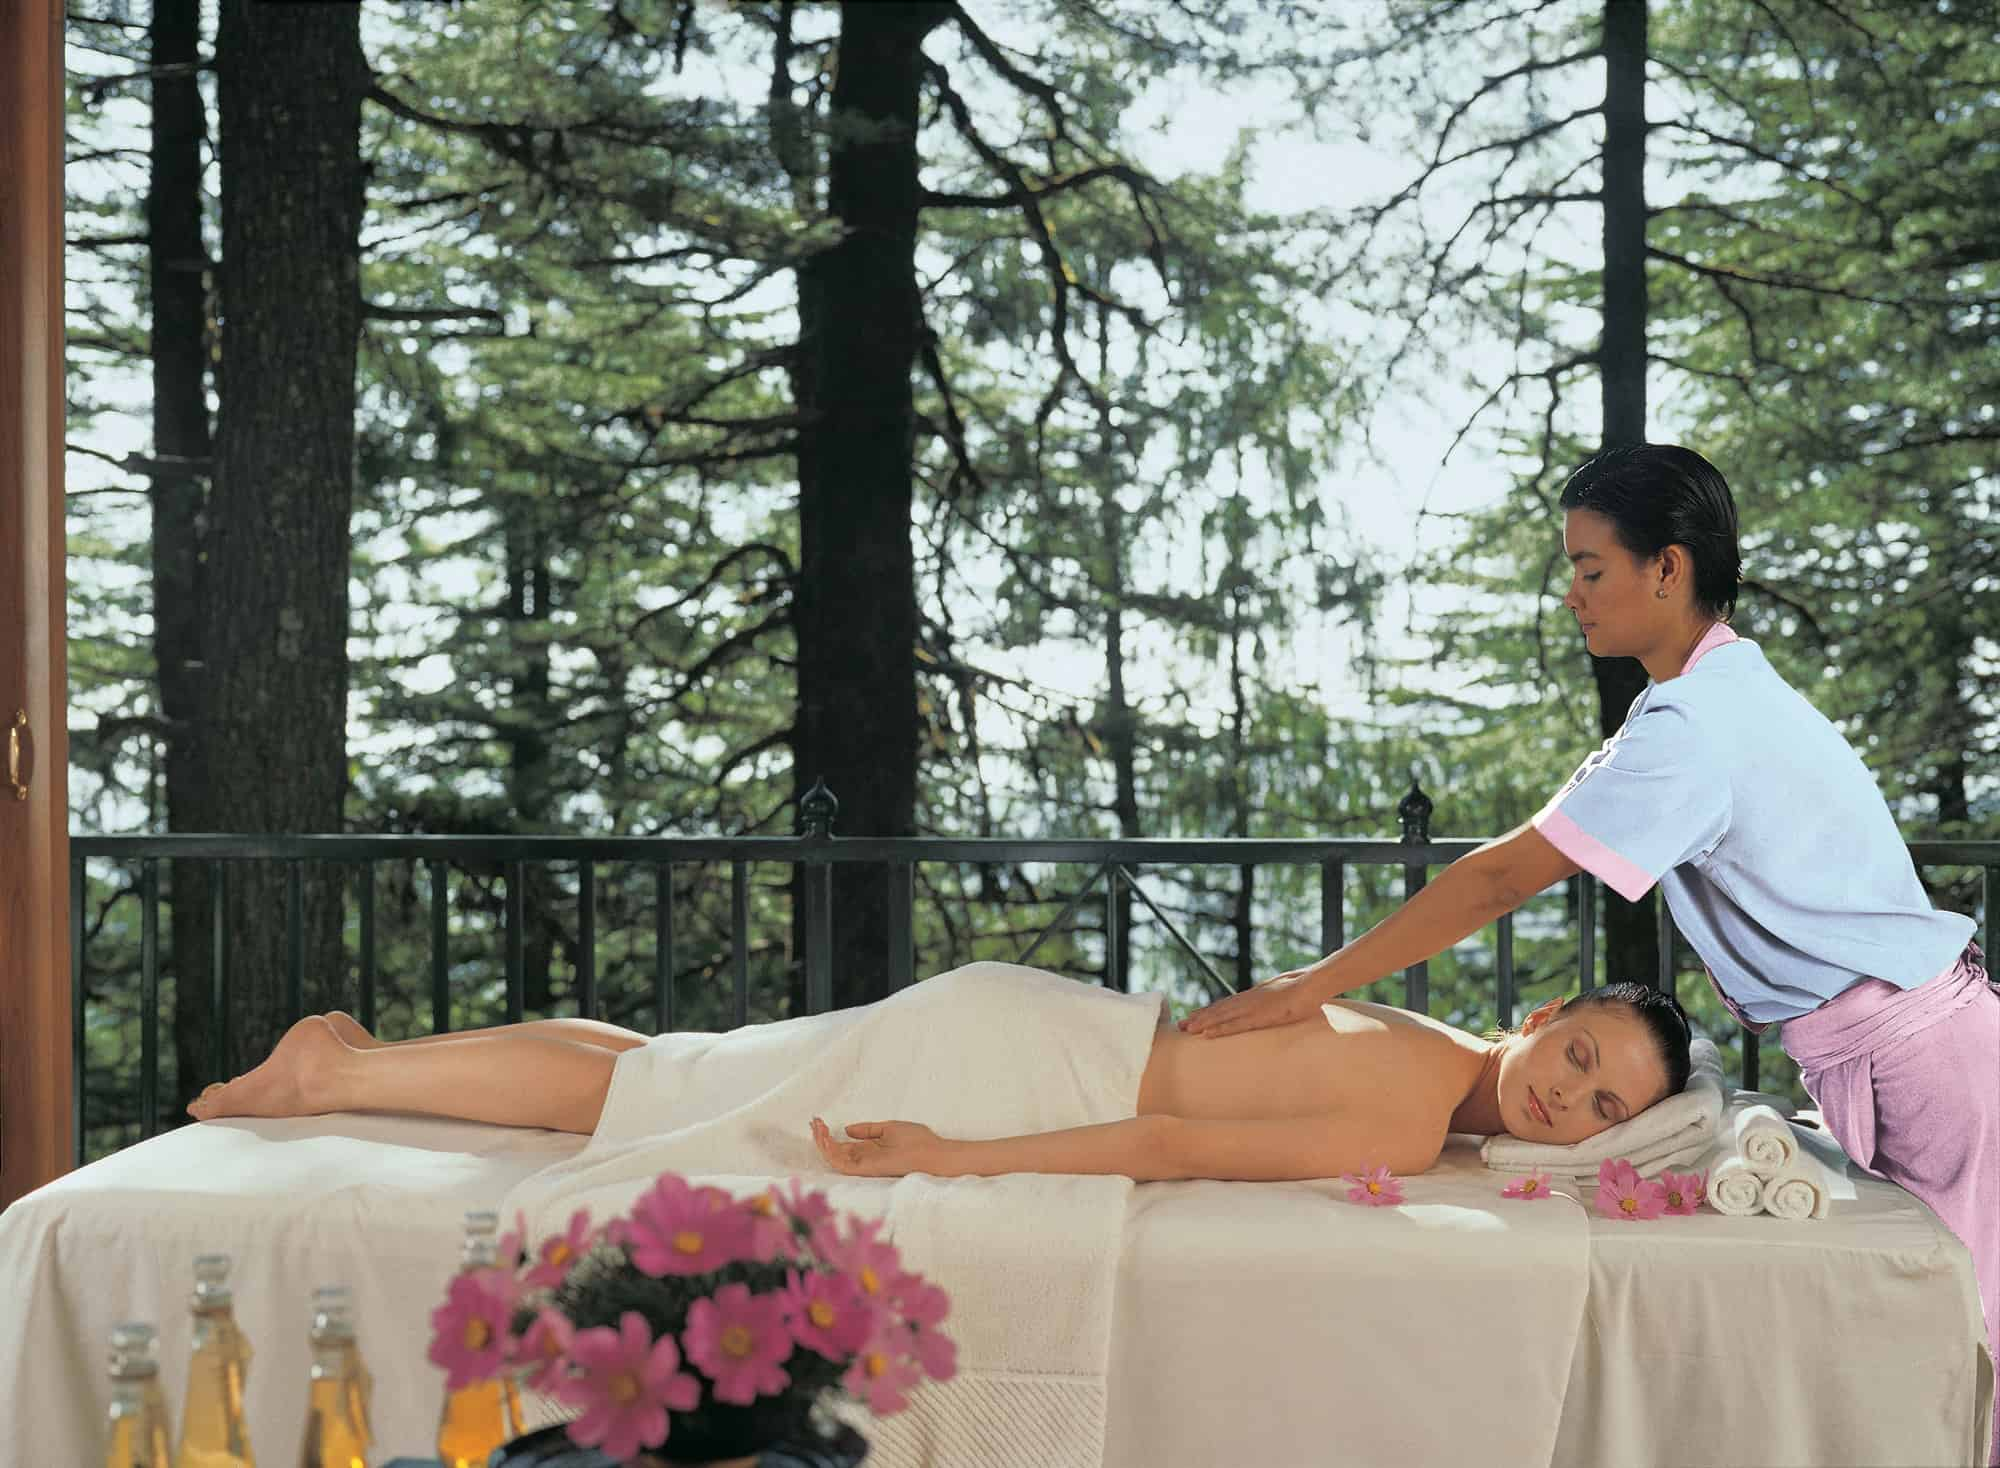 Spa Pavillion at The Oberoi Spa - Wildflower Hall, Shimla in the Himalayas 01